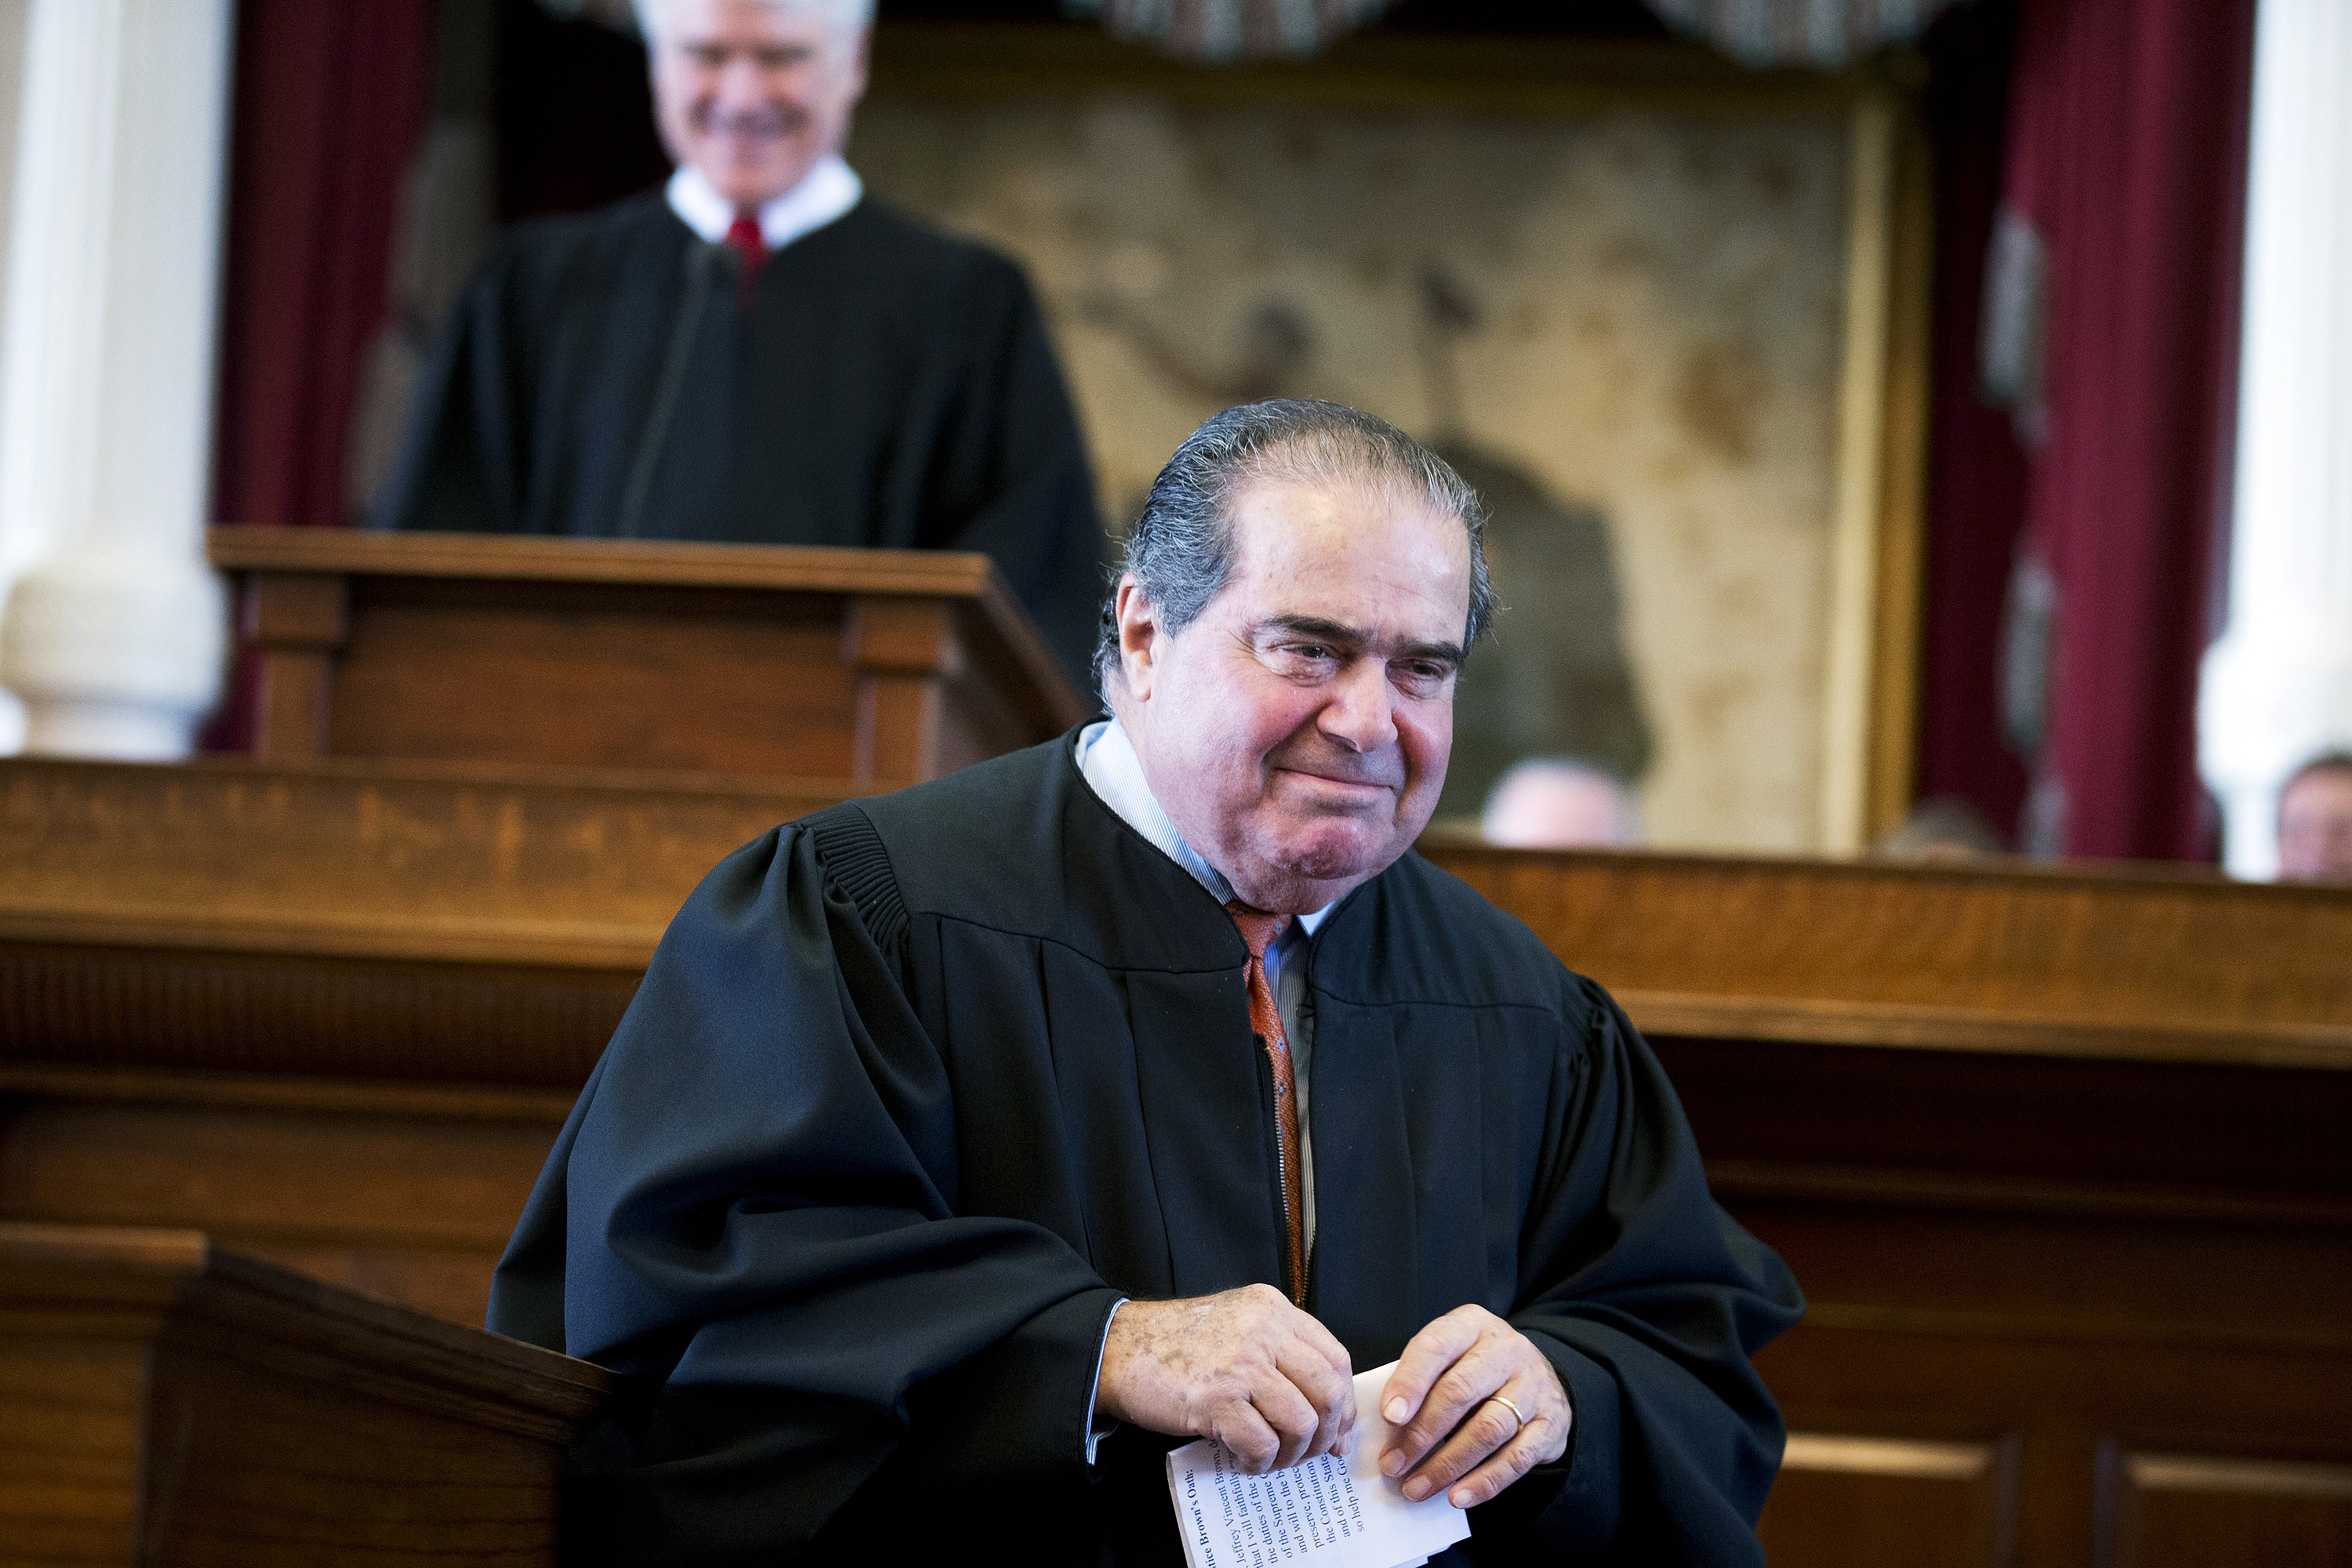 This Nov. 12, 2013 photo shows  Supreme Court Justice Antonin Scalia during the investiture of Texas Supreme Court Chief Justice Nathan Hecht at the Texas Capitol in Austin.